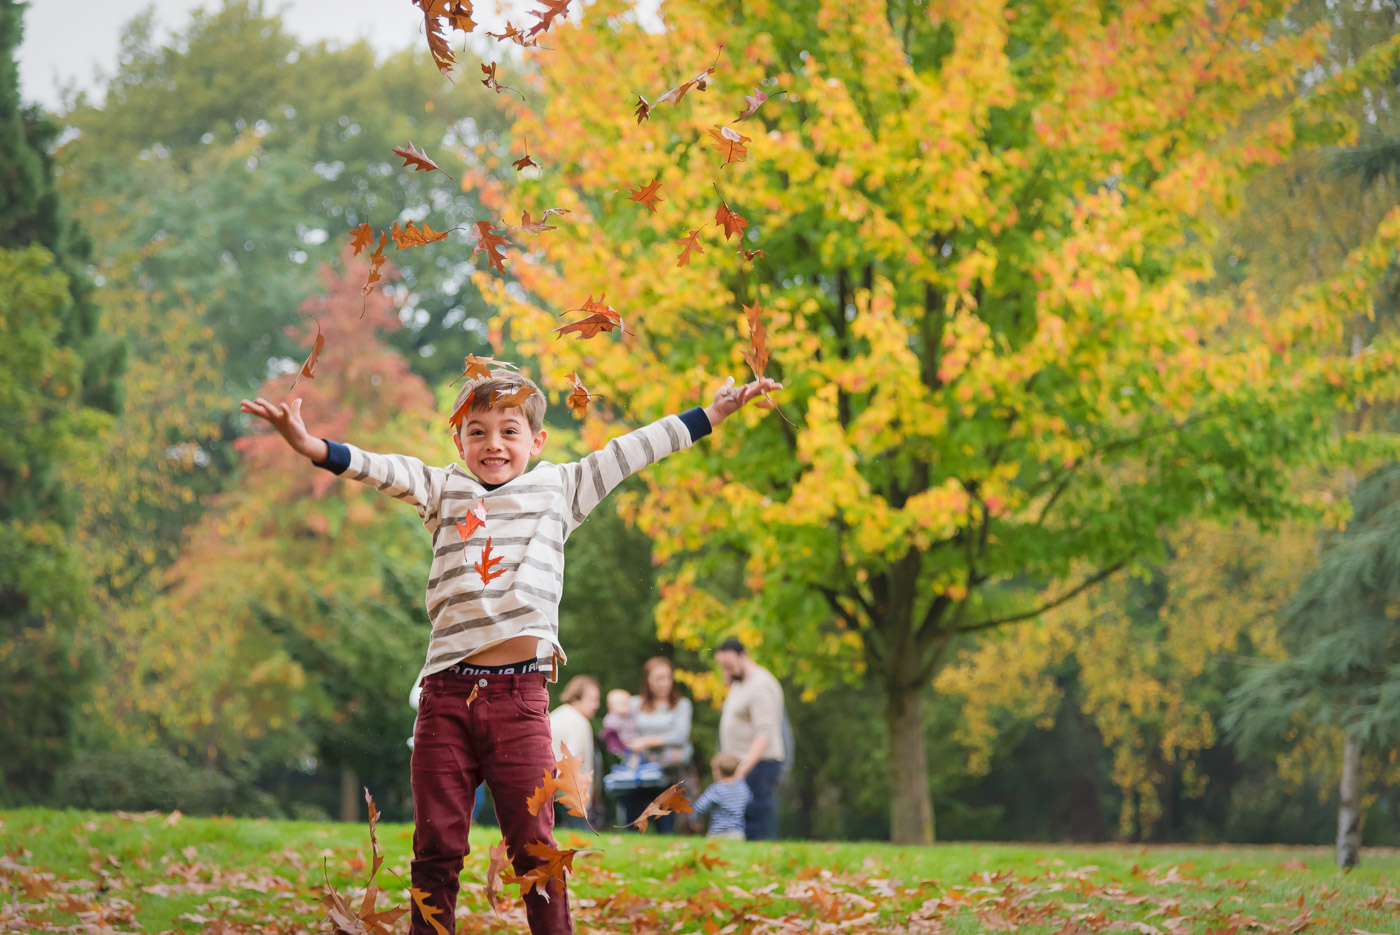 Portrait of a boy throwing autumn leaves in the air with his family waiting for him in background